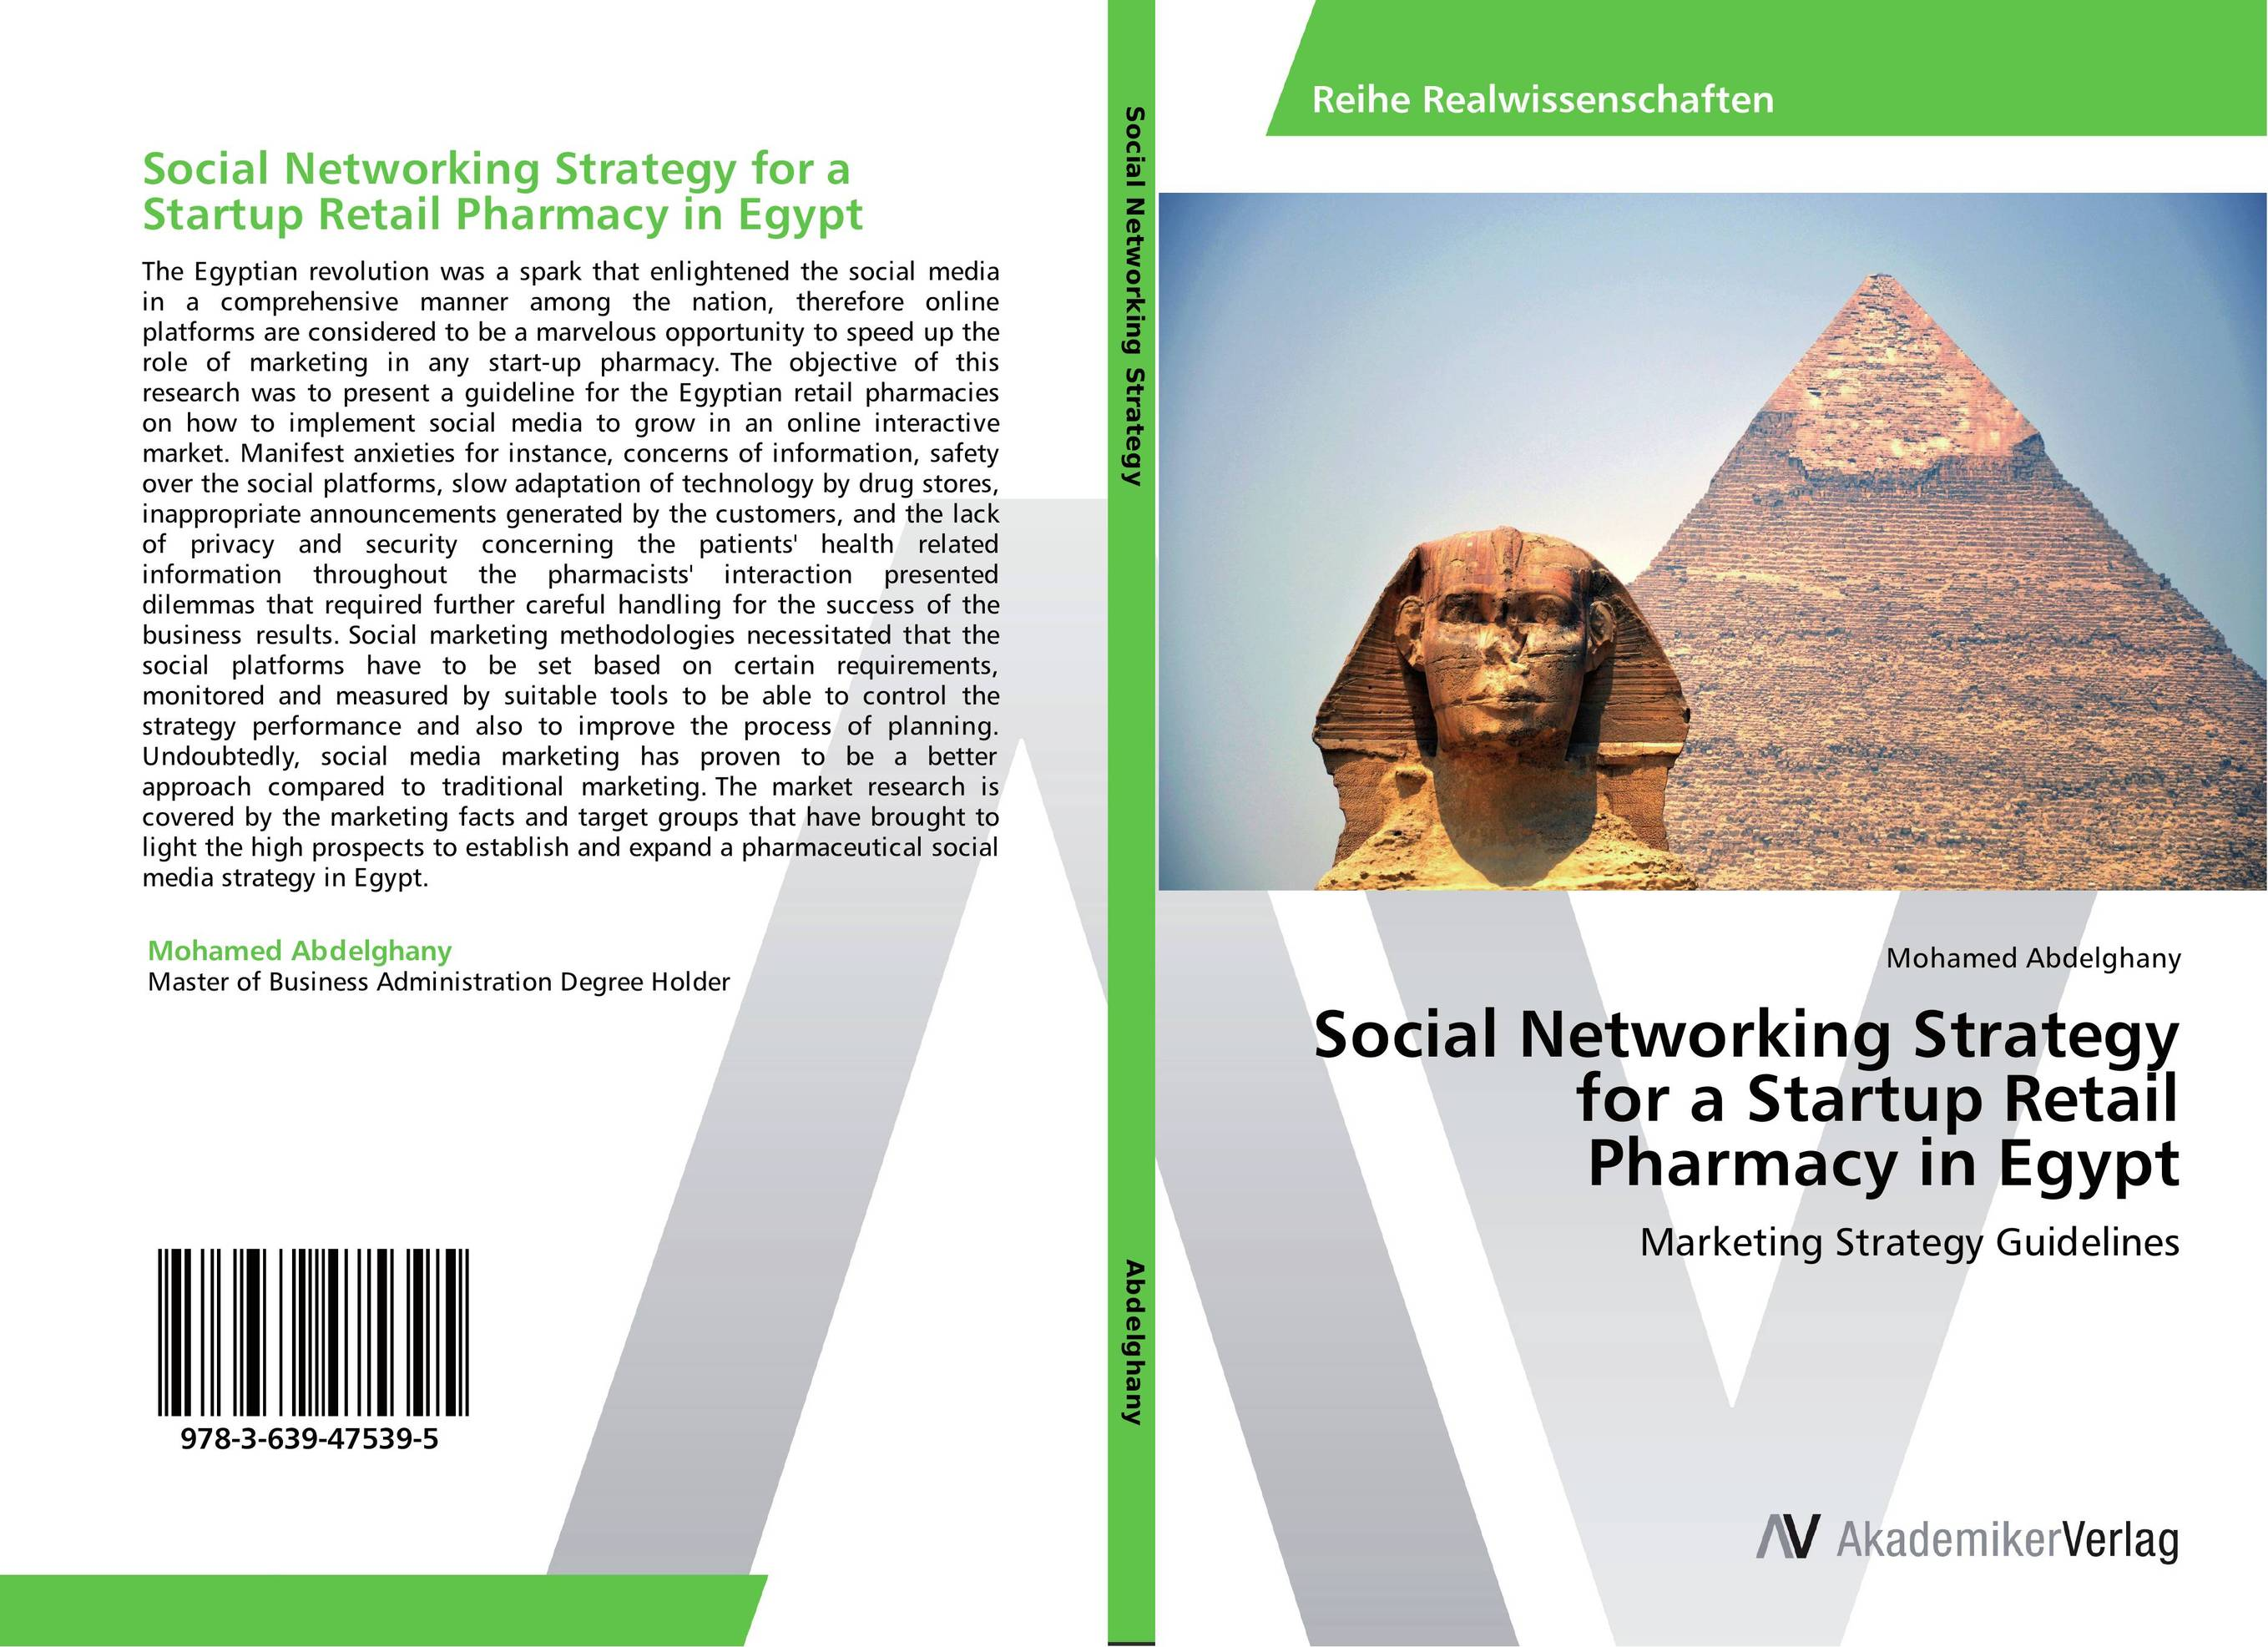 Social Networking Strategy for a Startup Retail Pharmacy in Egypt dionne kasian lew the social executive how to master social media and why it s good for business